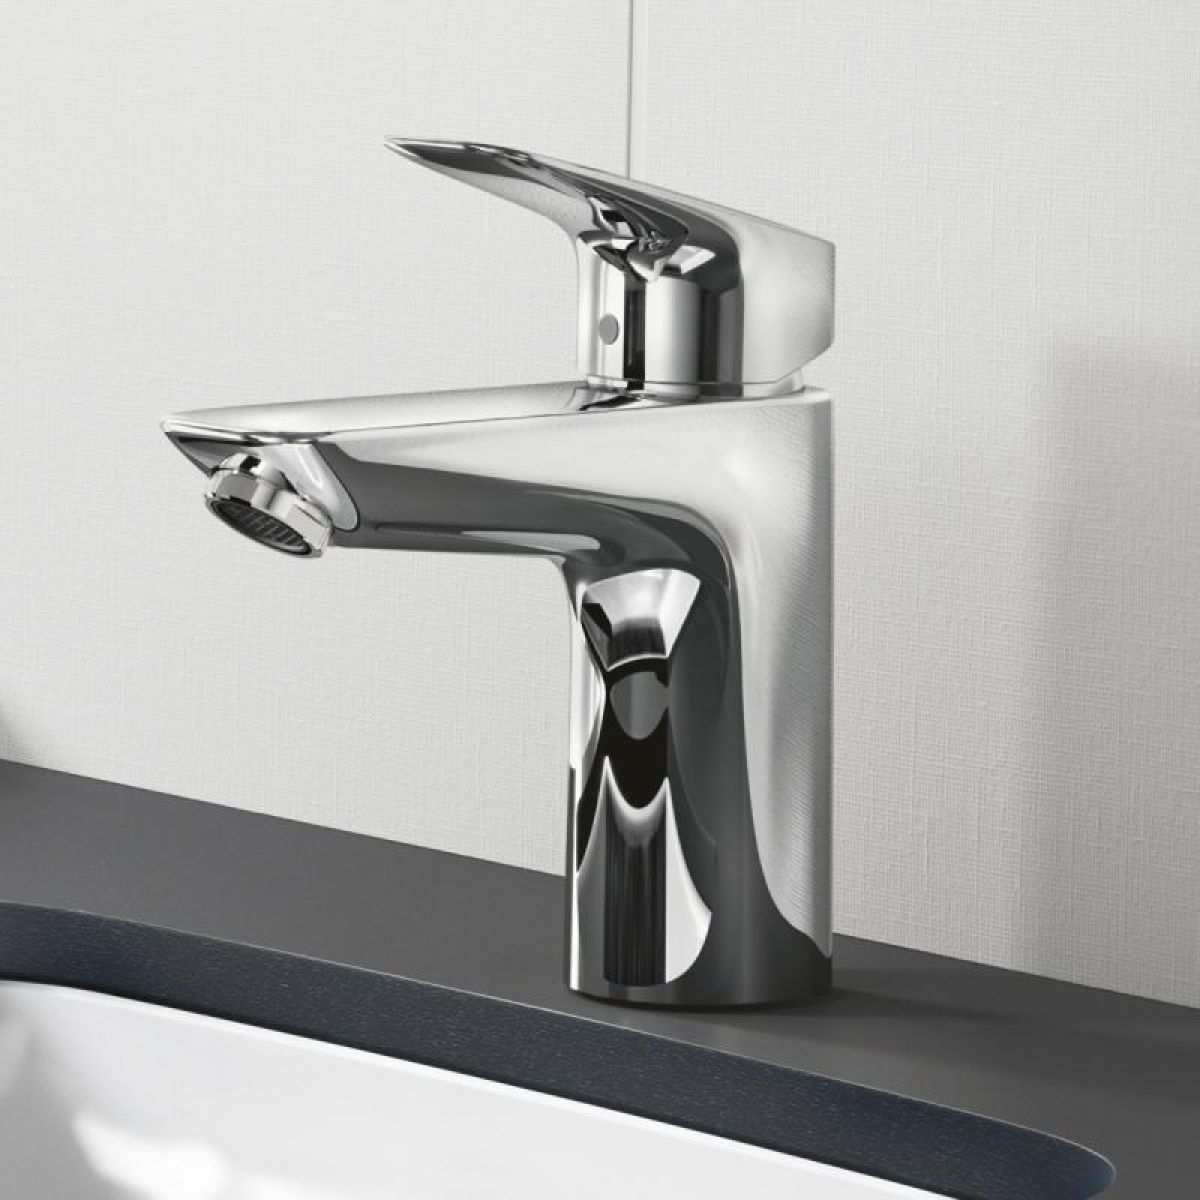 Hansgrohe Logis Basin Mixer 100 Uk Bathrooms